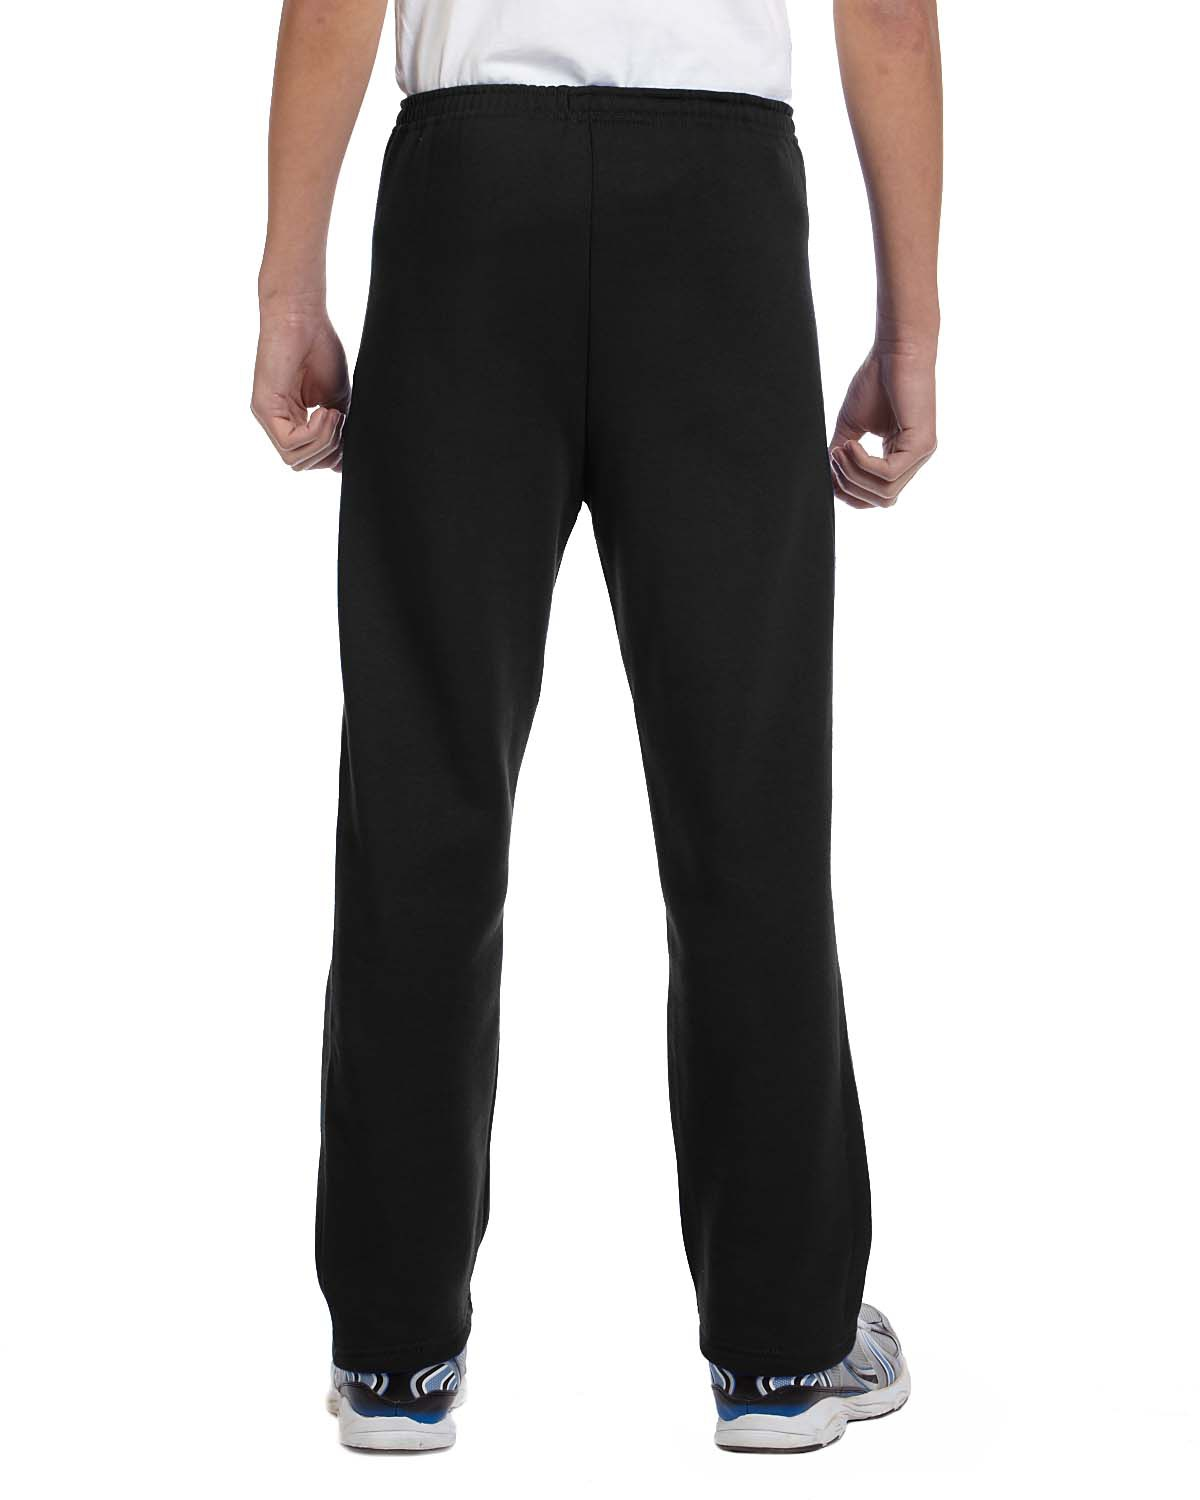 'Russell Athletic 596HBB Dri Power Youth Open Bottom Sweatpants'